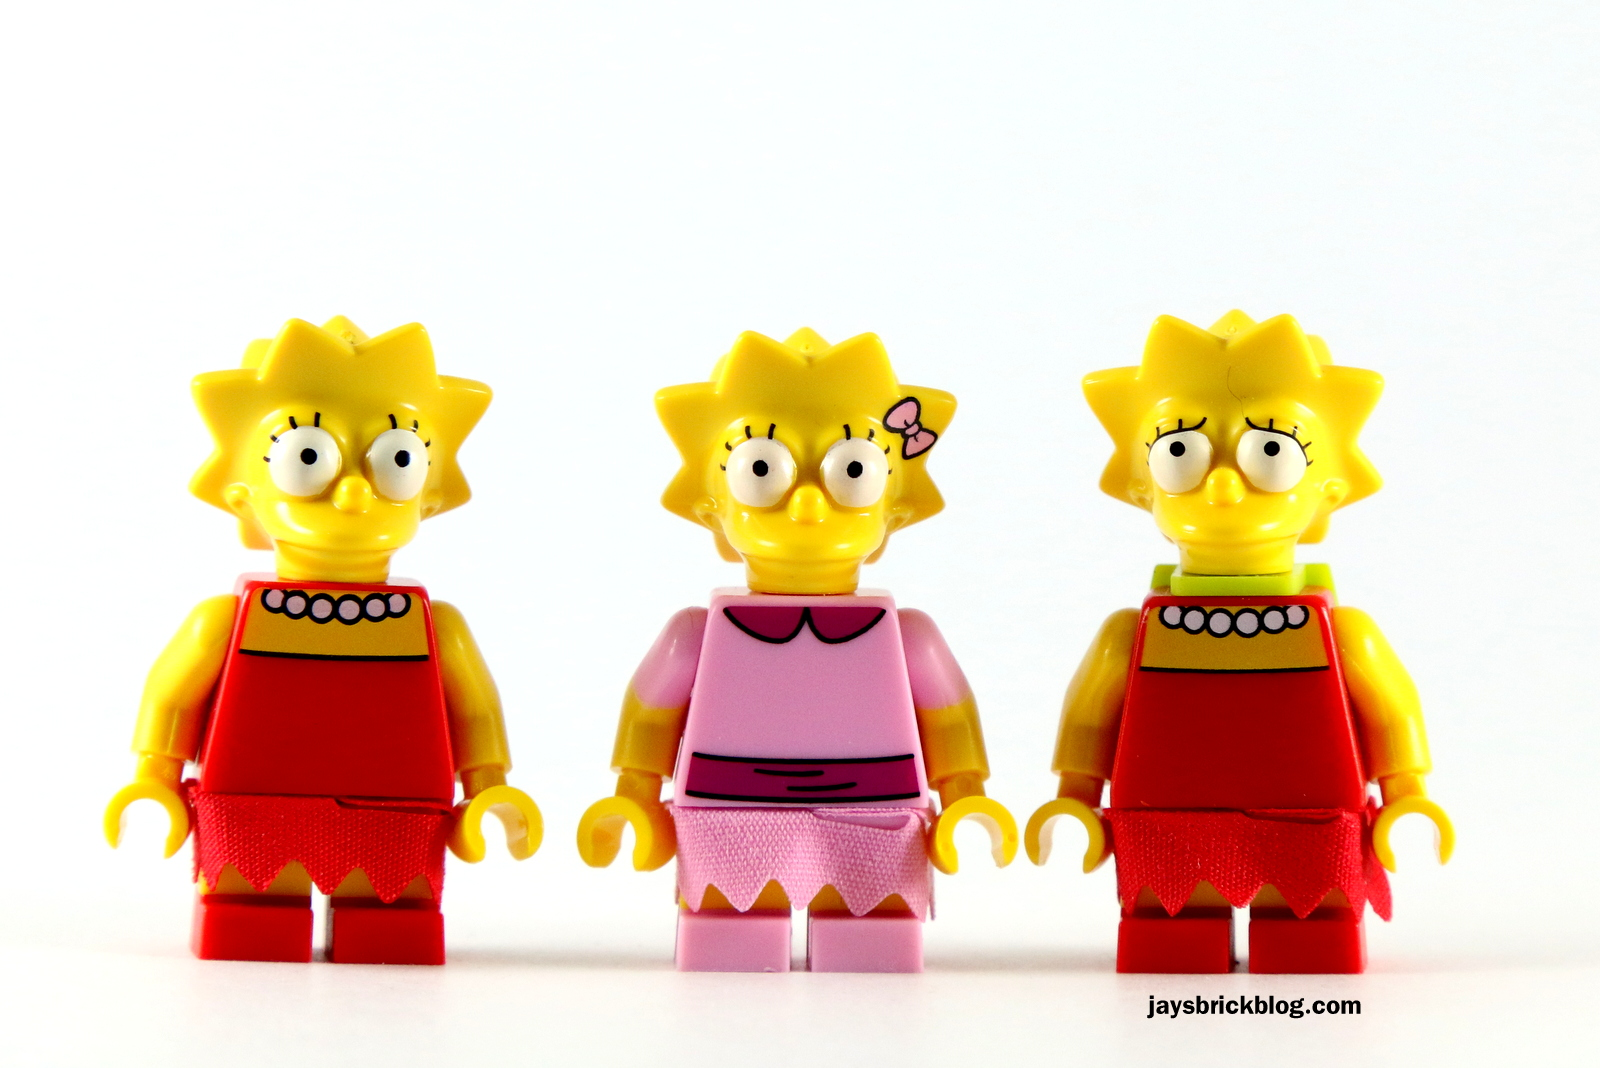 Review Lego Simpsons Minifigures Series 2